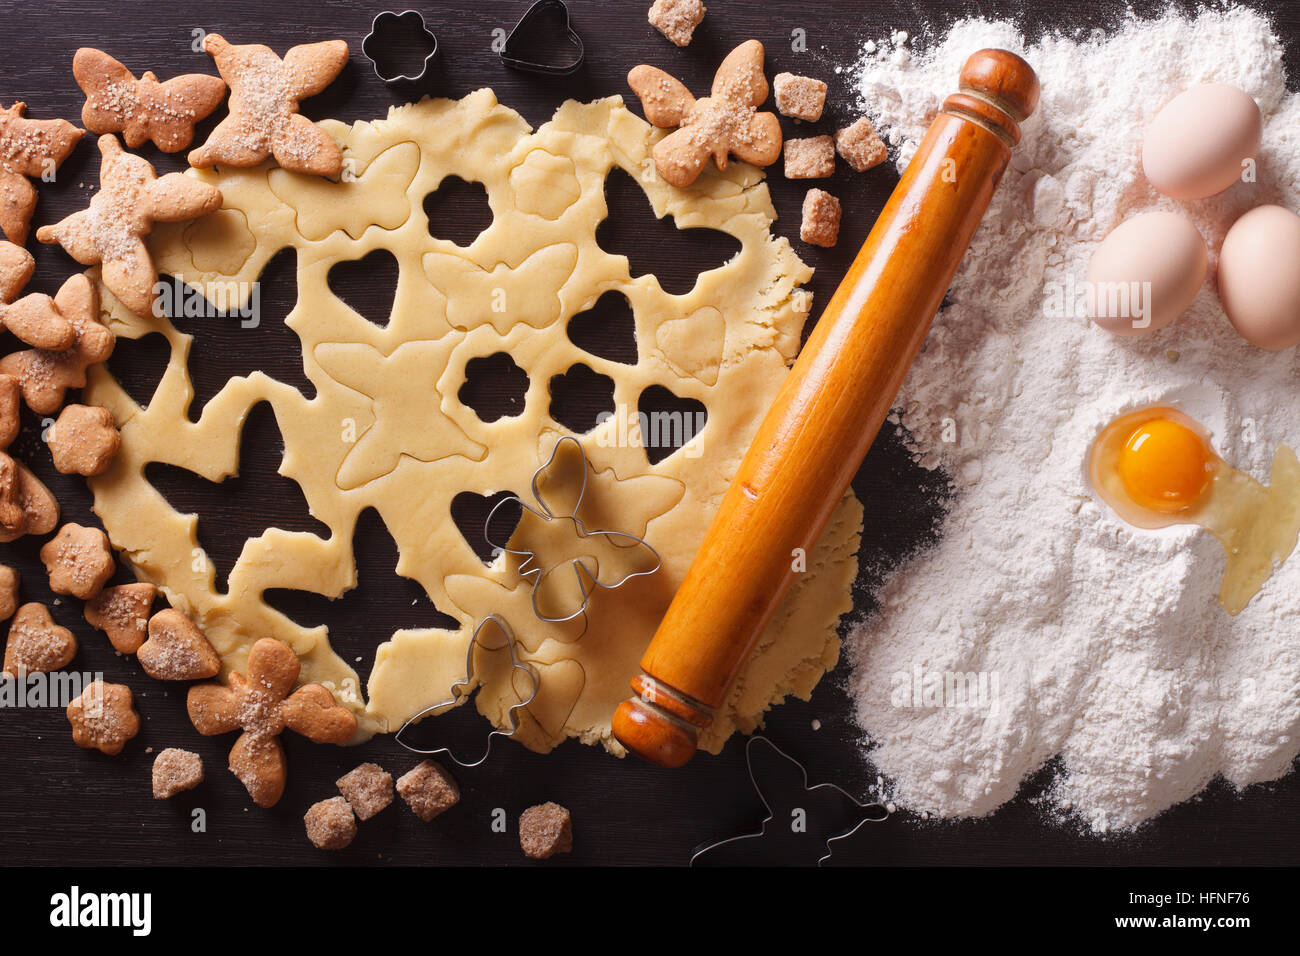 Cooking figure pastry close up on the table and ingredients. horizontal view from above - Stock Image